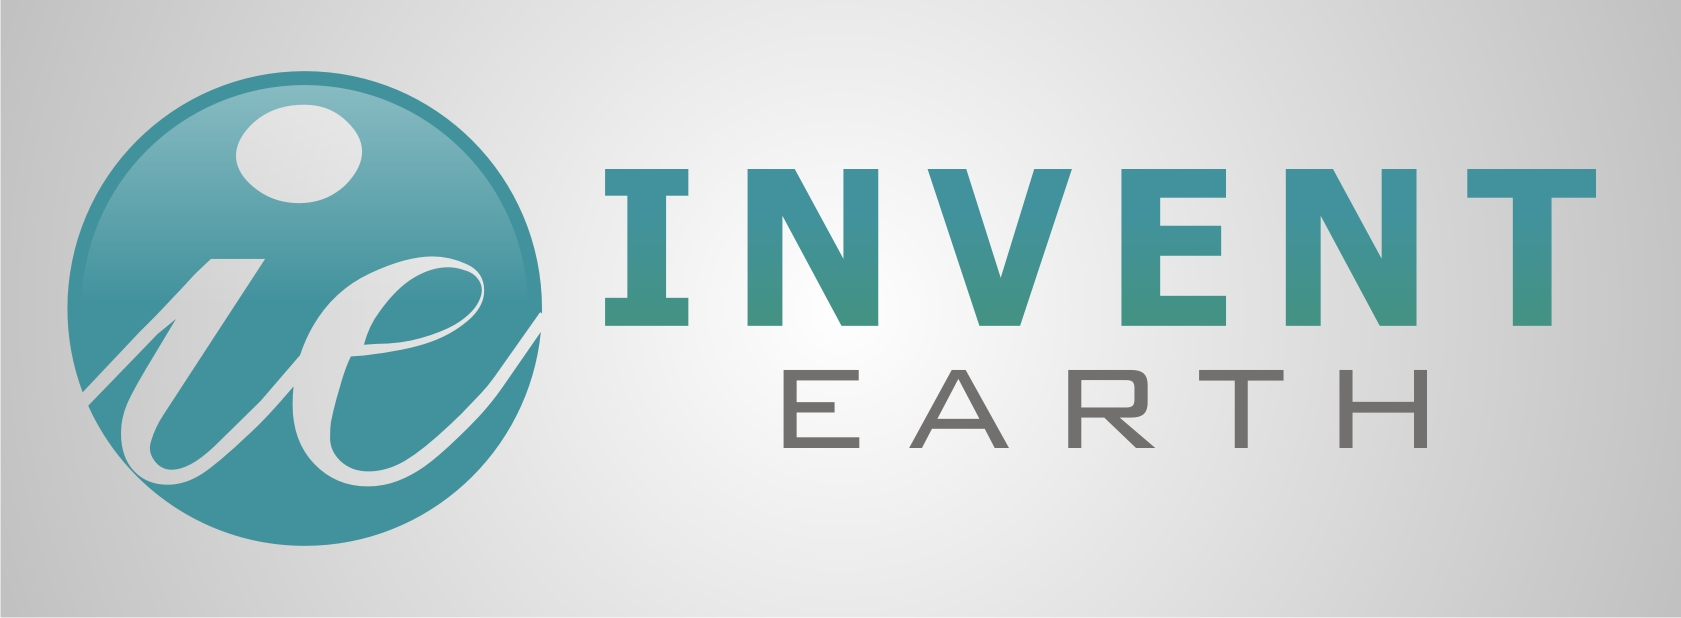 Logo Design by Angger Noviadi - Entry No. 46 in the Logo Design Contest Artistic Logo Design for Invent Earth.